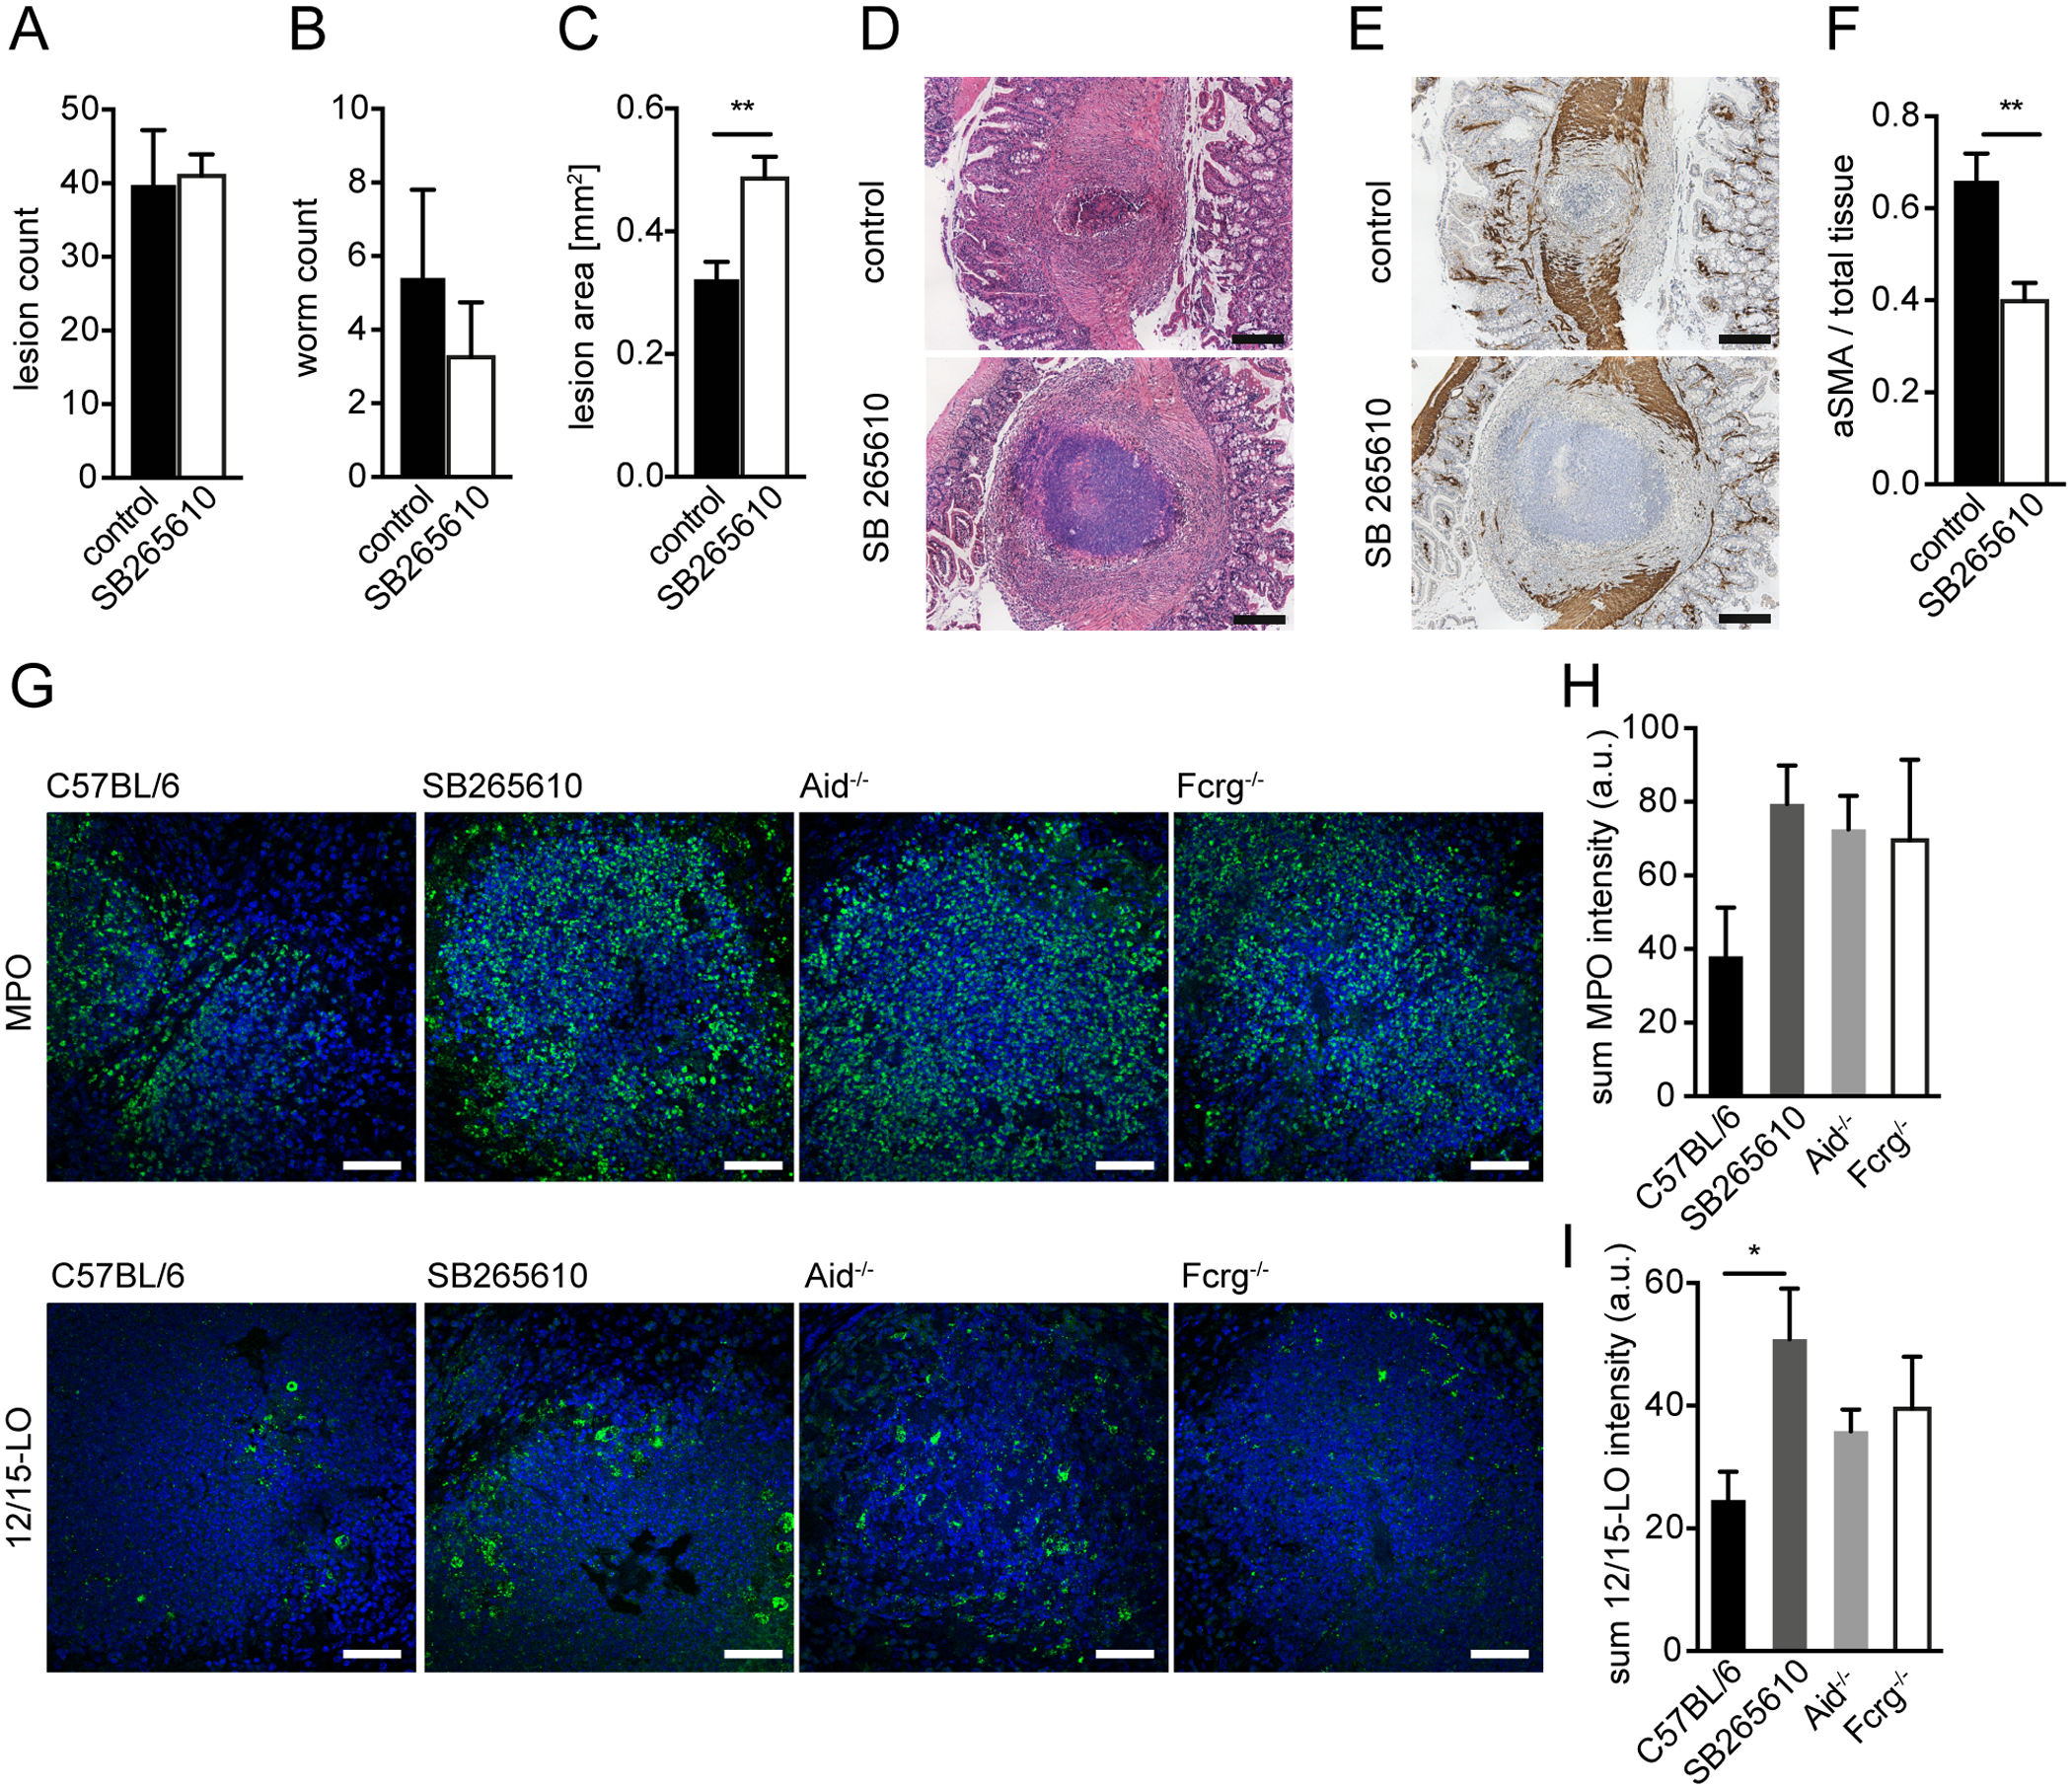 Inhibition of CXCR2 signaling leads to delayed MF accumulation and increased lesion size without affecting granulocyte recruitment in vivo.